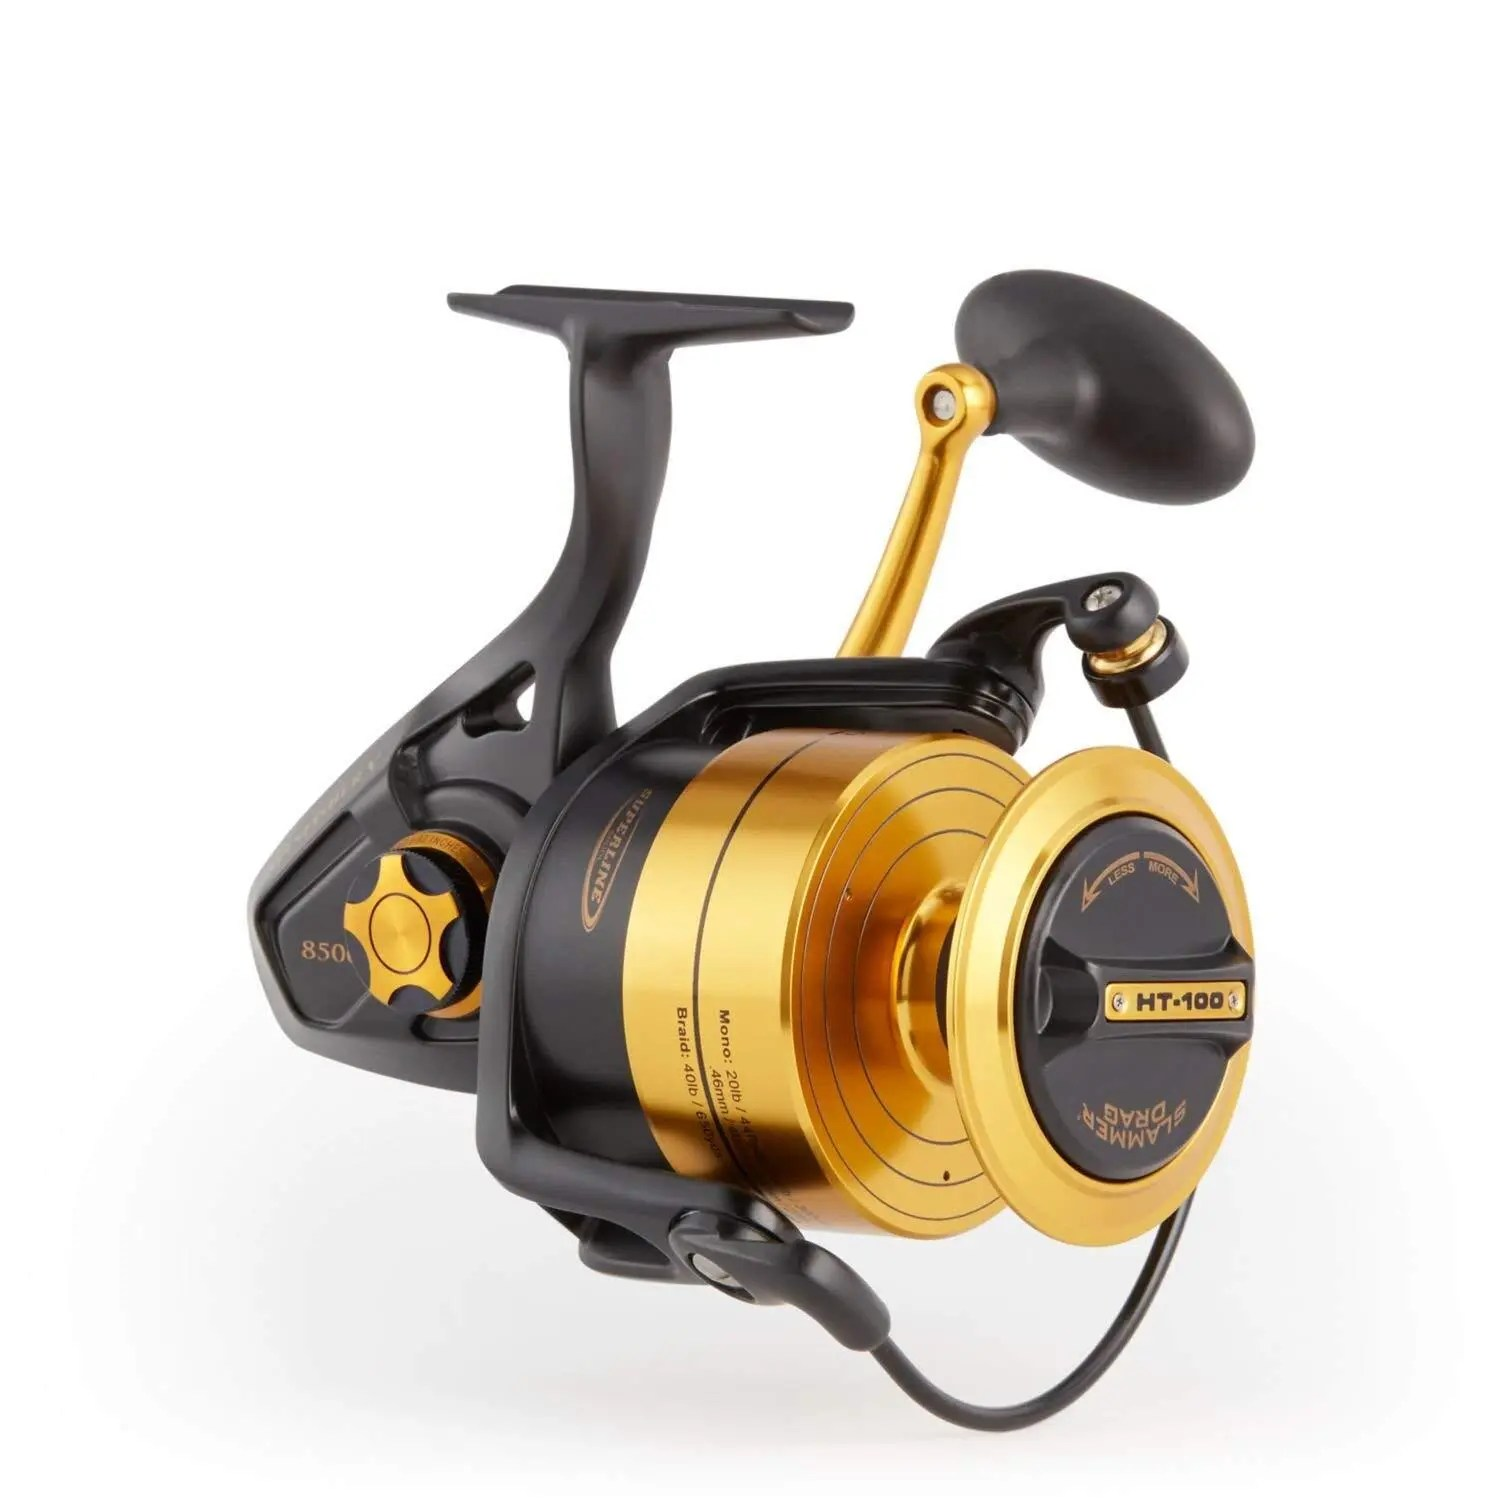 Penn Spinfisher V & VI Spinning Fishing Reels